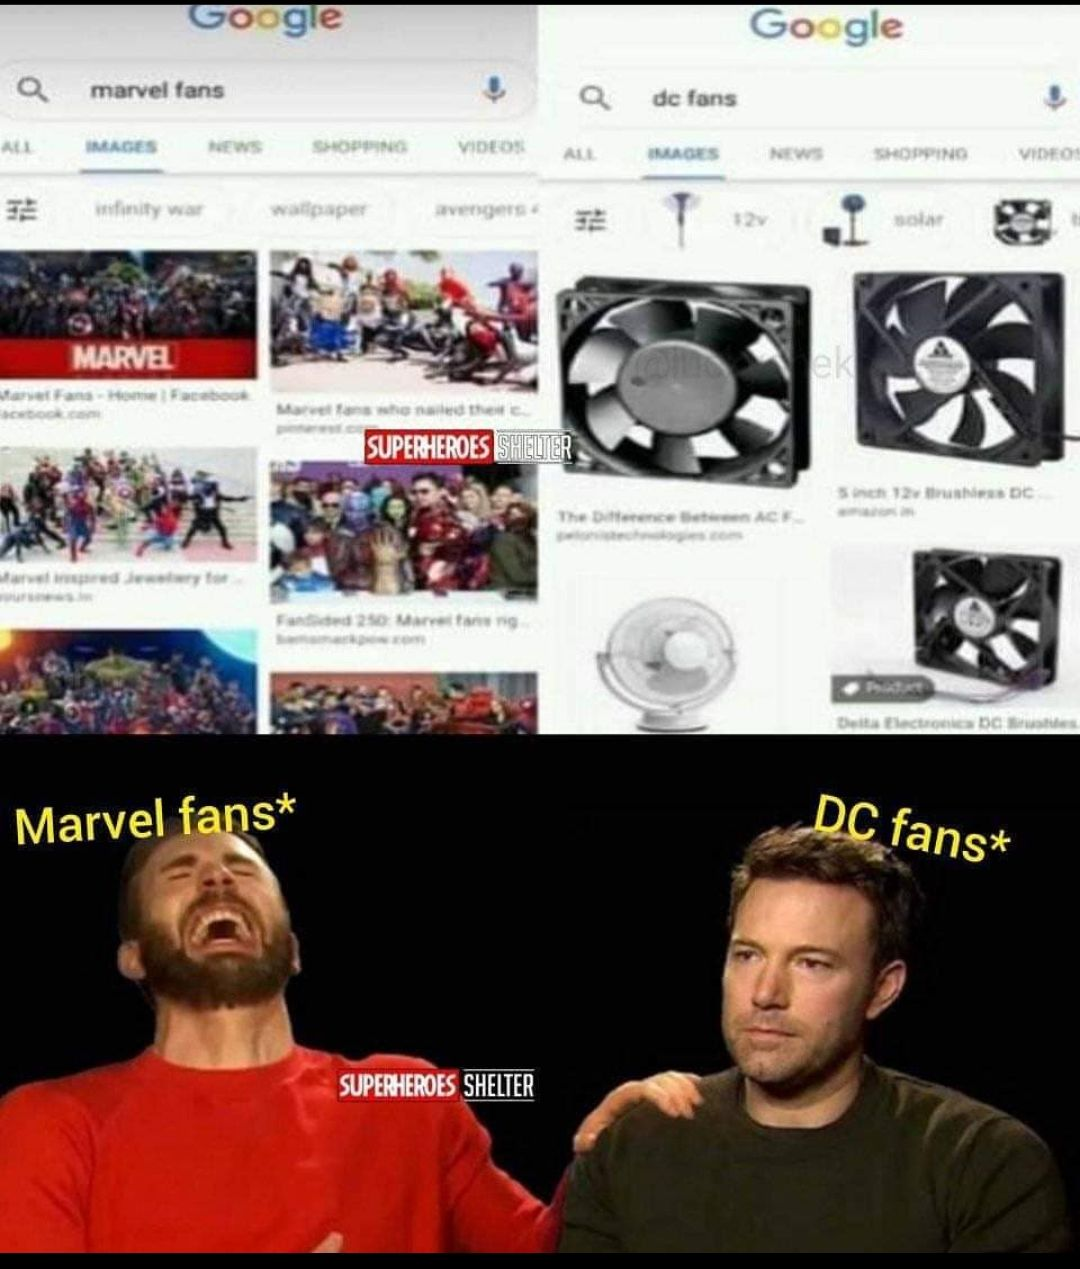 Marvel fans and DC fans